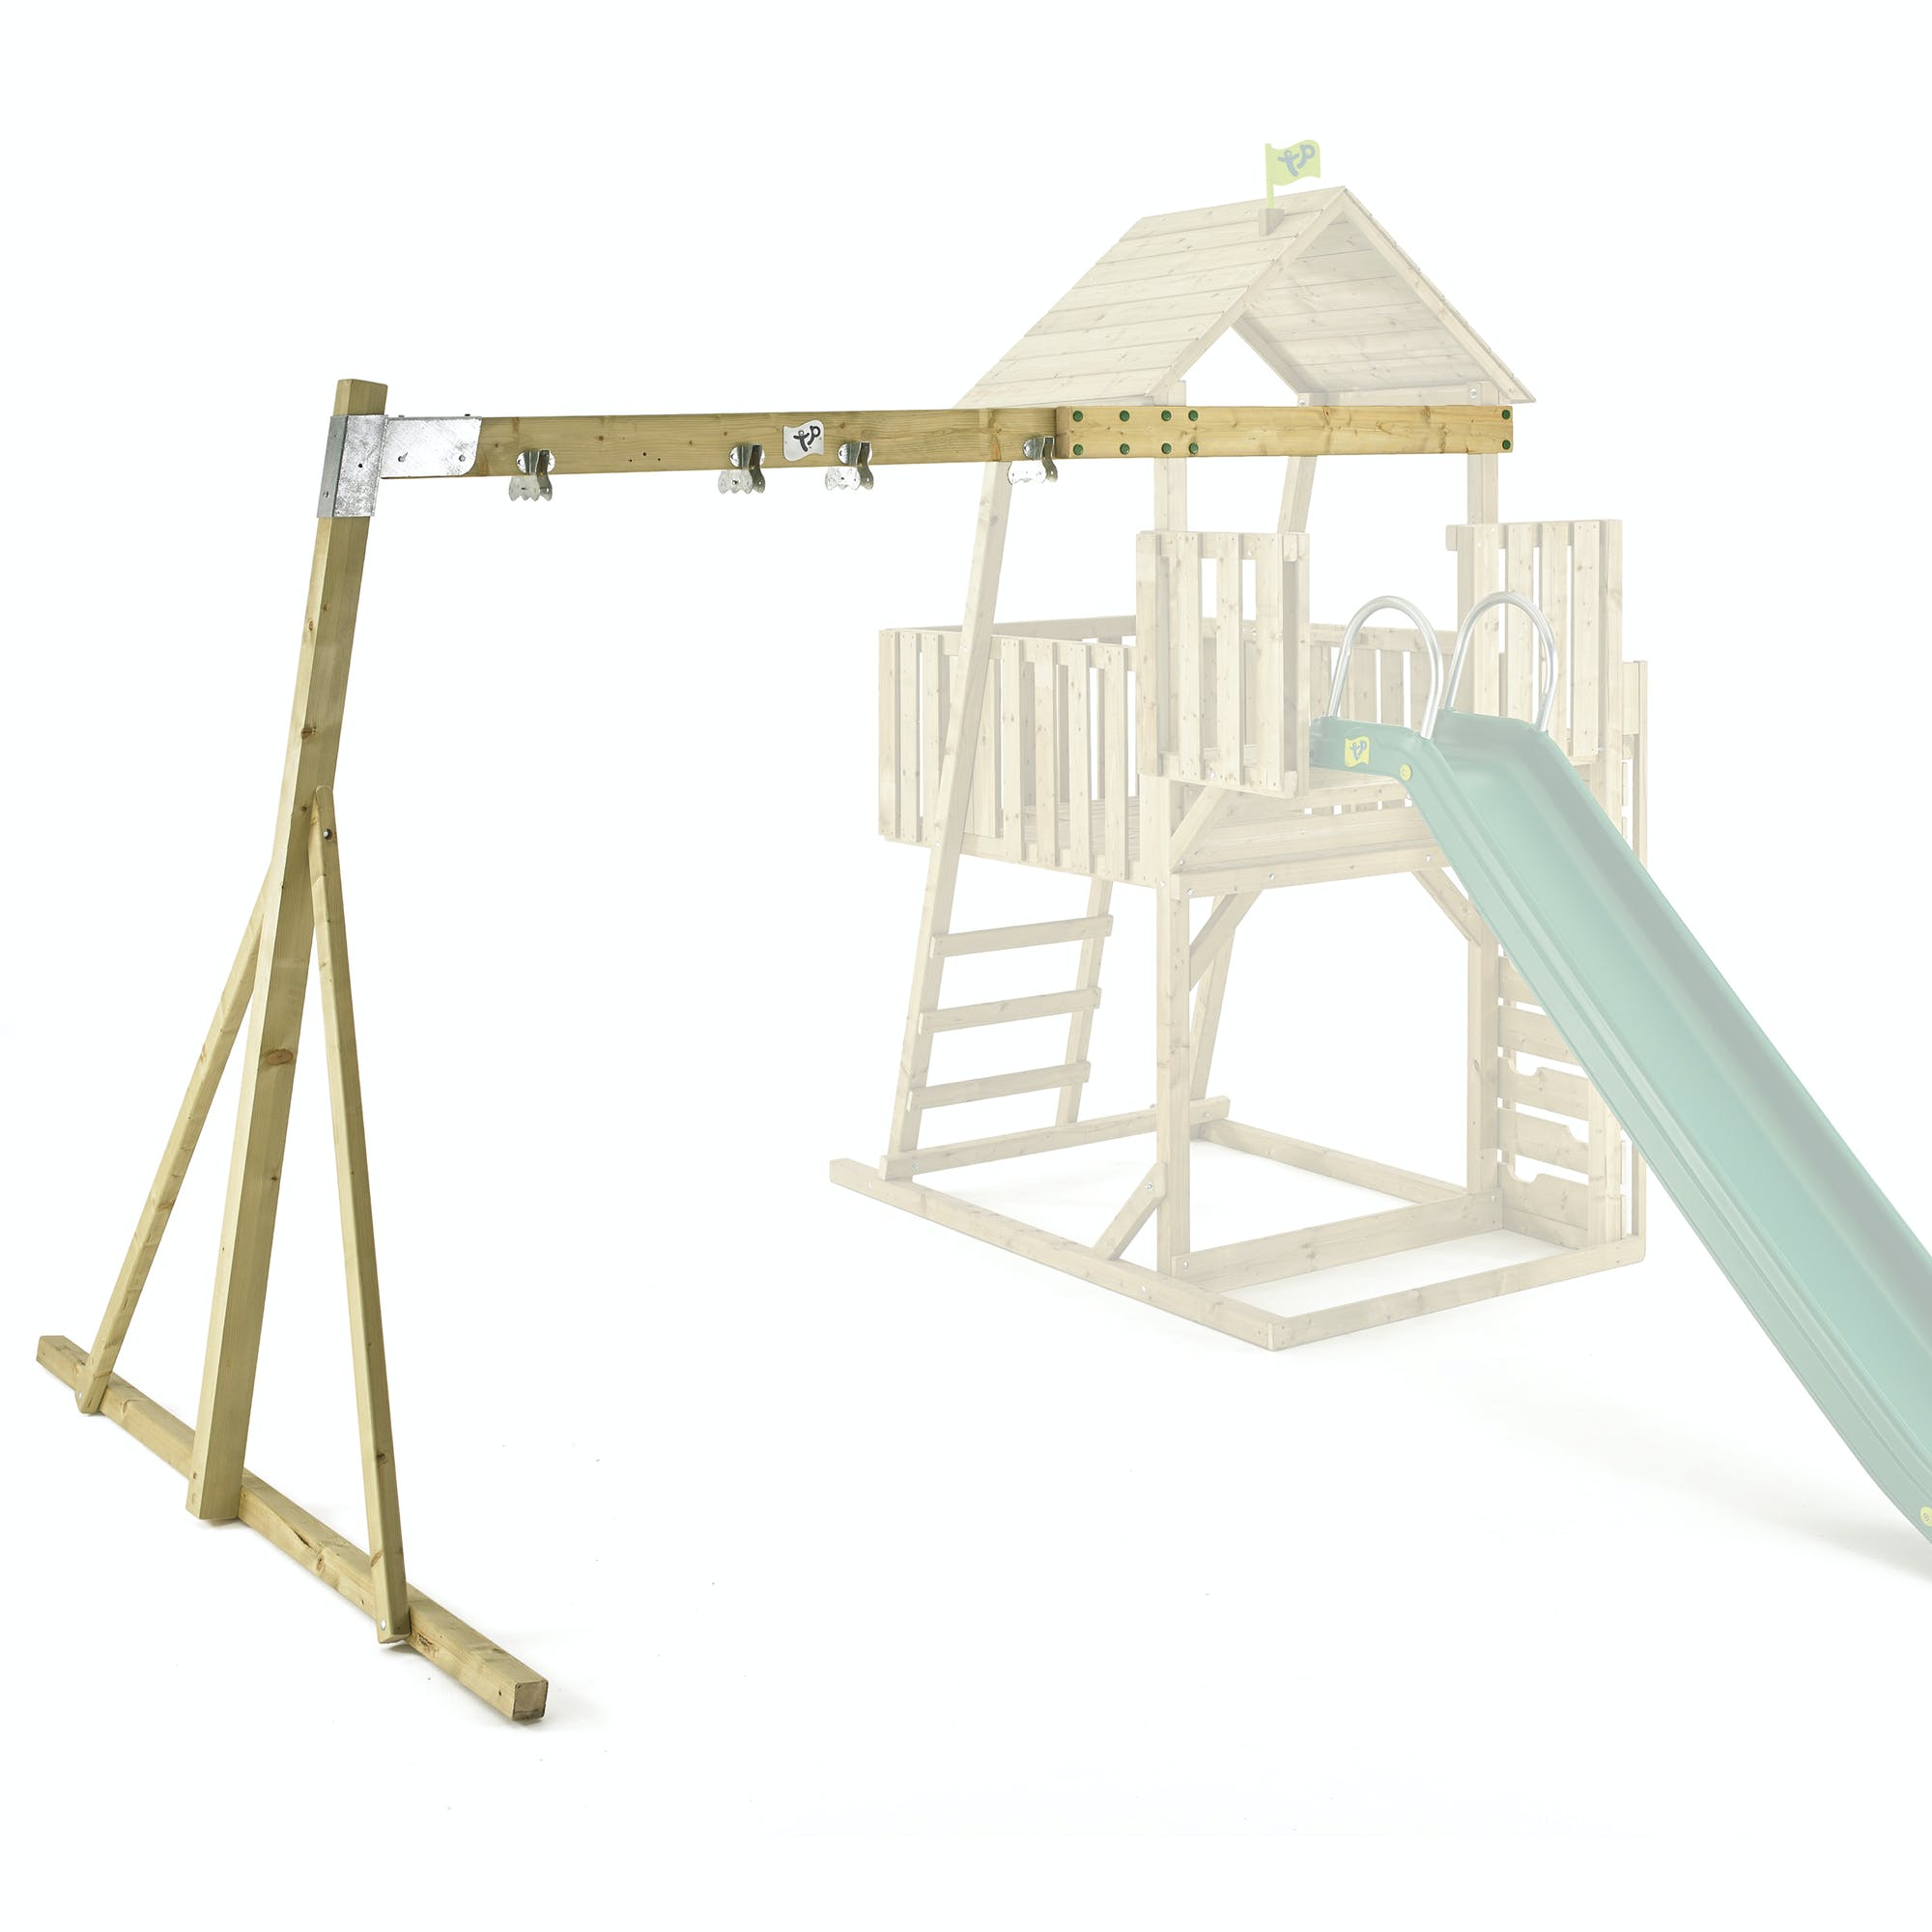 Kingswood2 Double Swing Arm